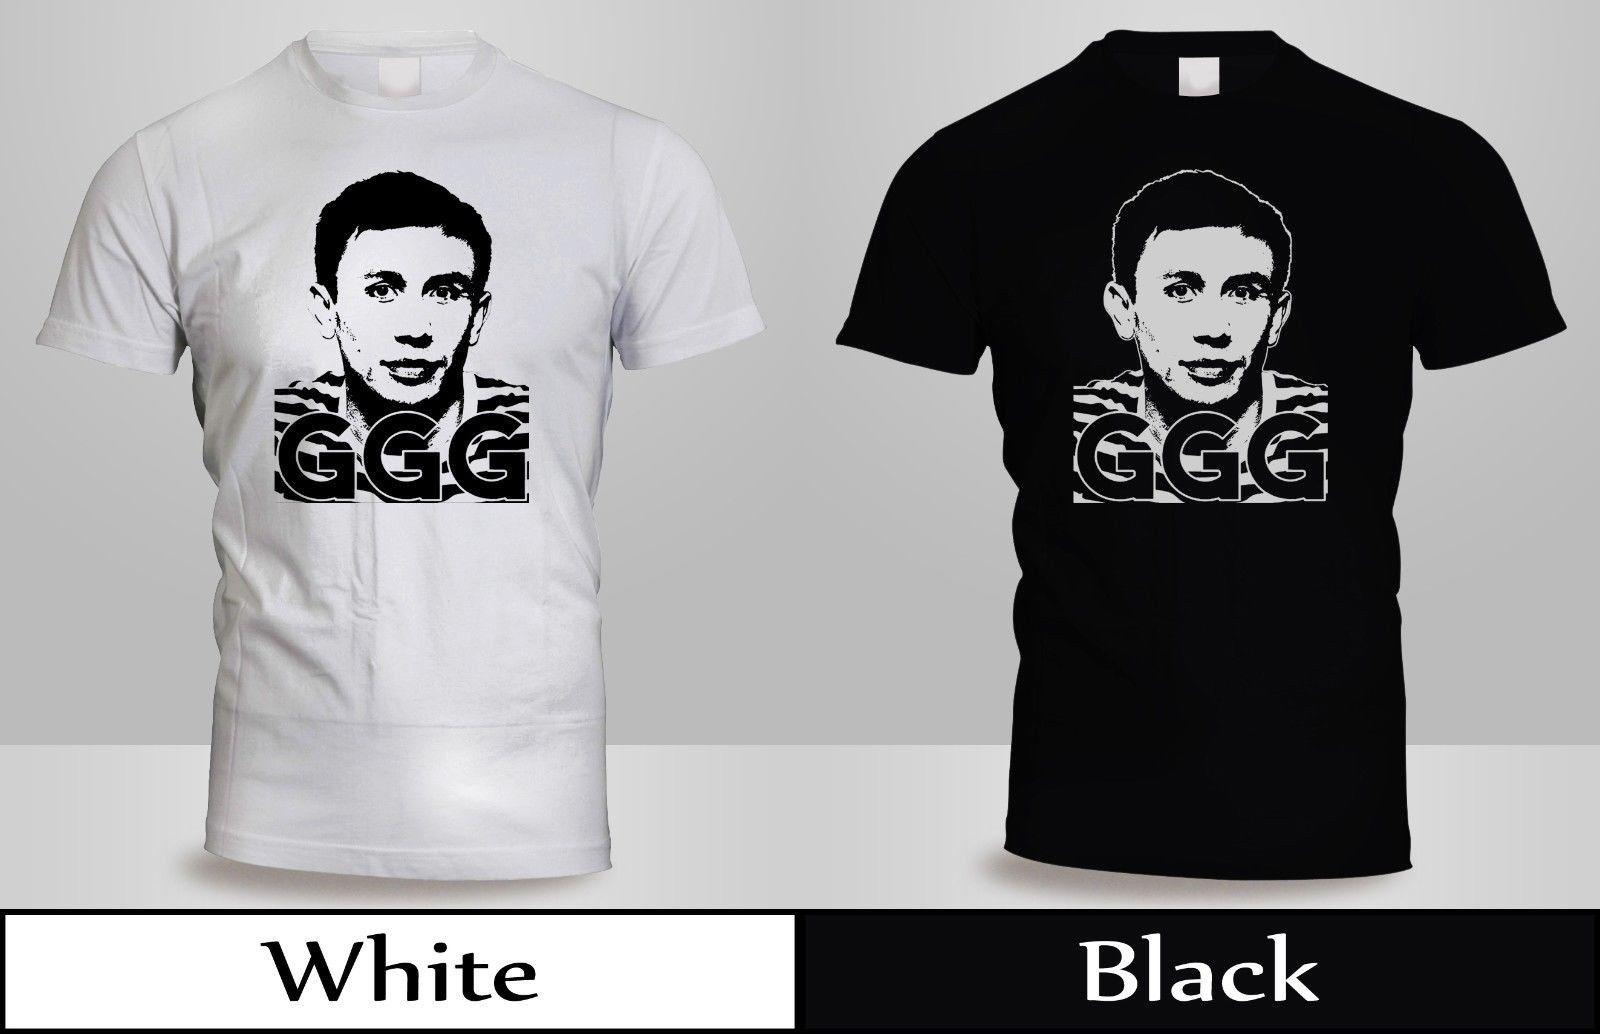 de2613b41411cb New Gennady Golovkin GGG T Shirt Mens Black White Boxing Best Poster Shirt  3 Popular T Shirt Funny It Shirts From Jasmine86